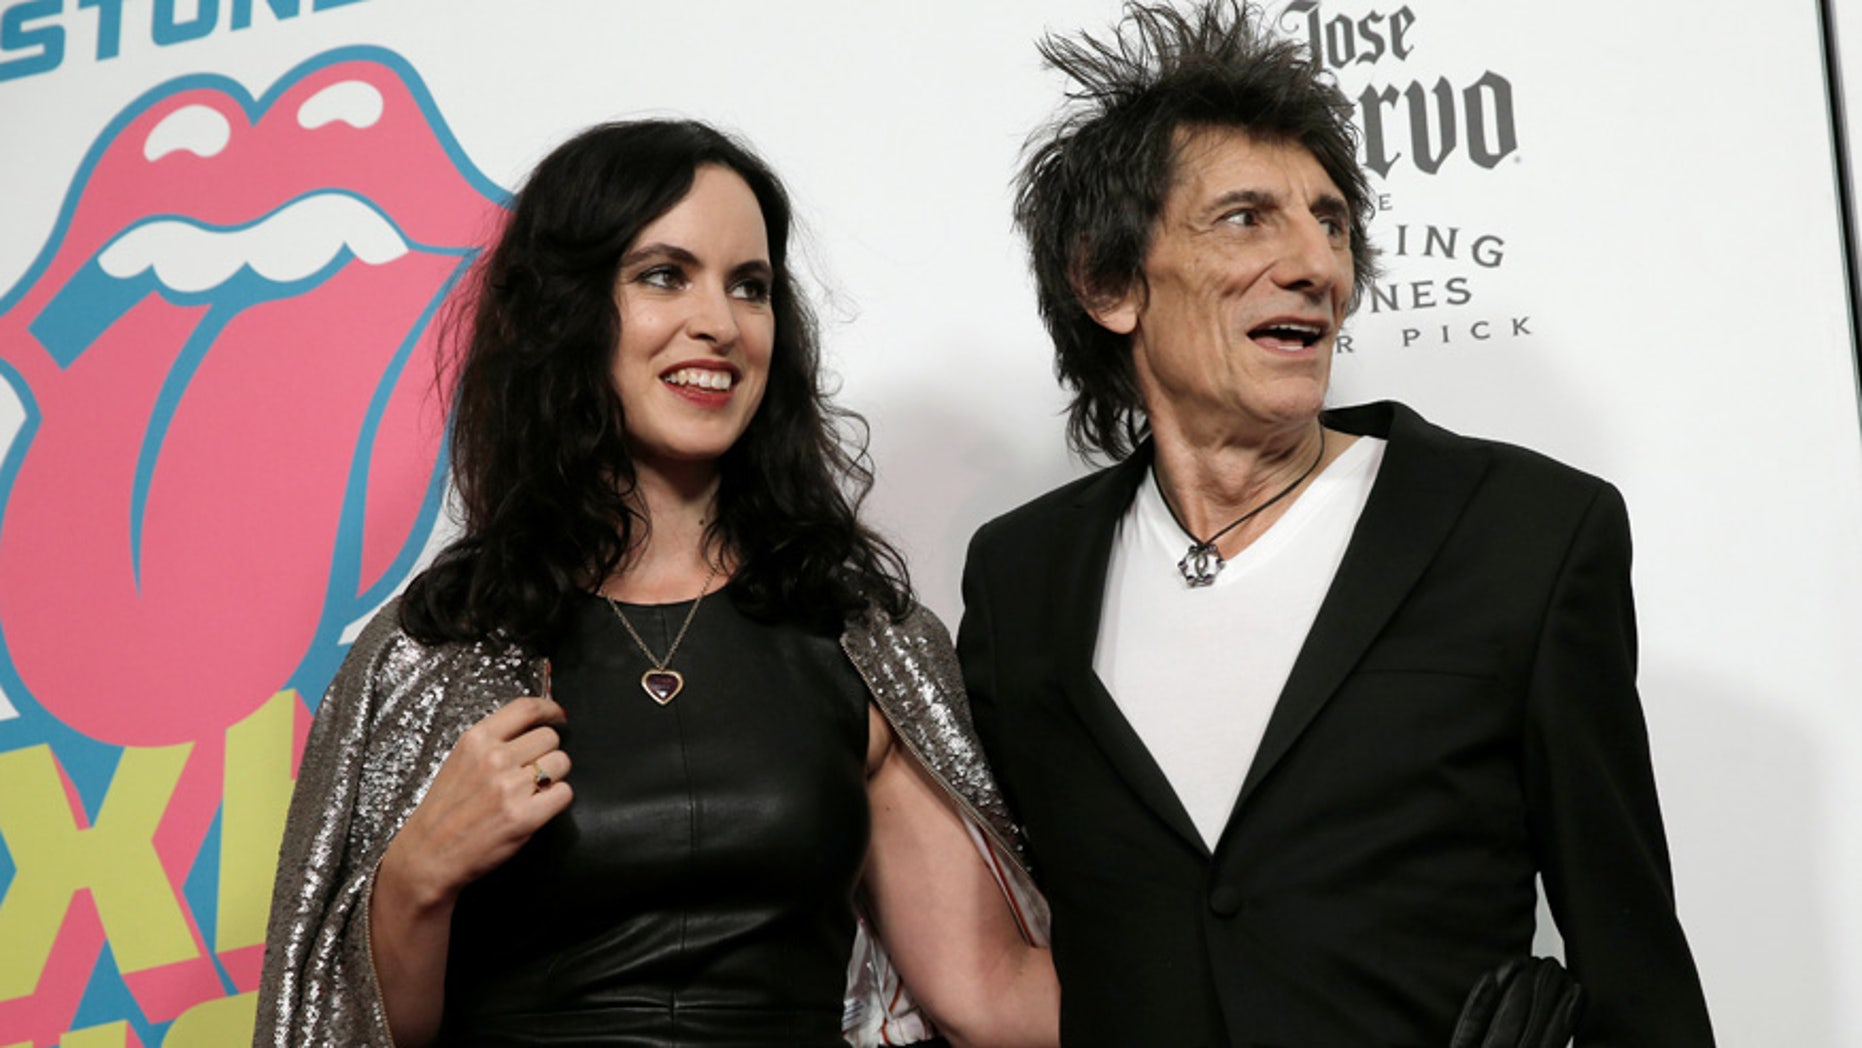 """Rolling Stones member Ronnie Wood and his wife Sally Humphreys pose for photographers at the opening of the new exhibit """"Exhibitionism: The Rolling Stones"""" in New York City on November 15, 2016."""